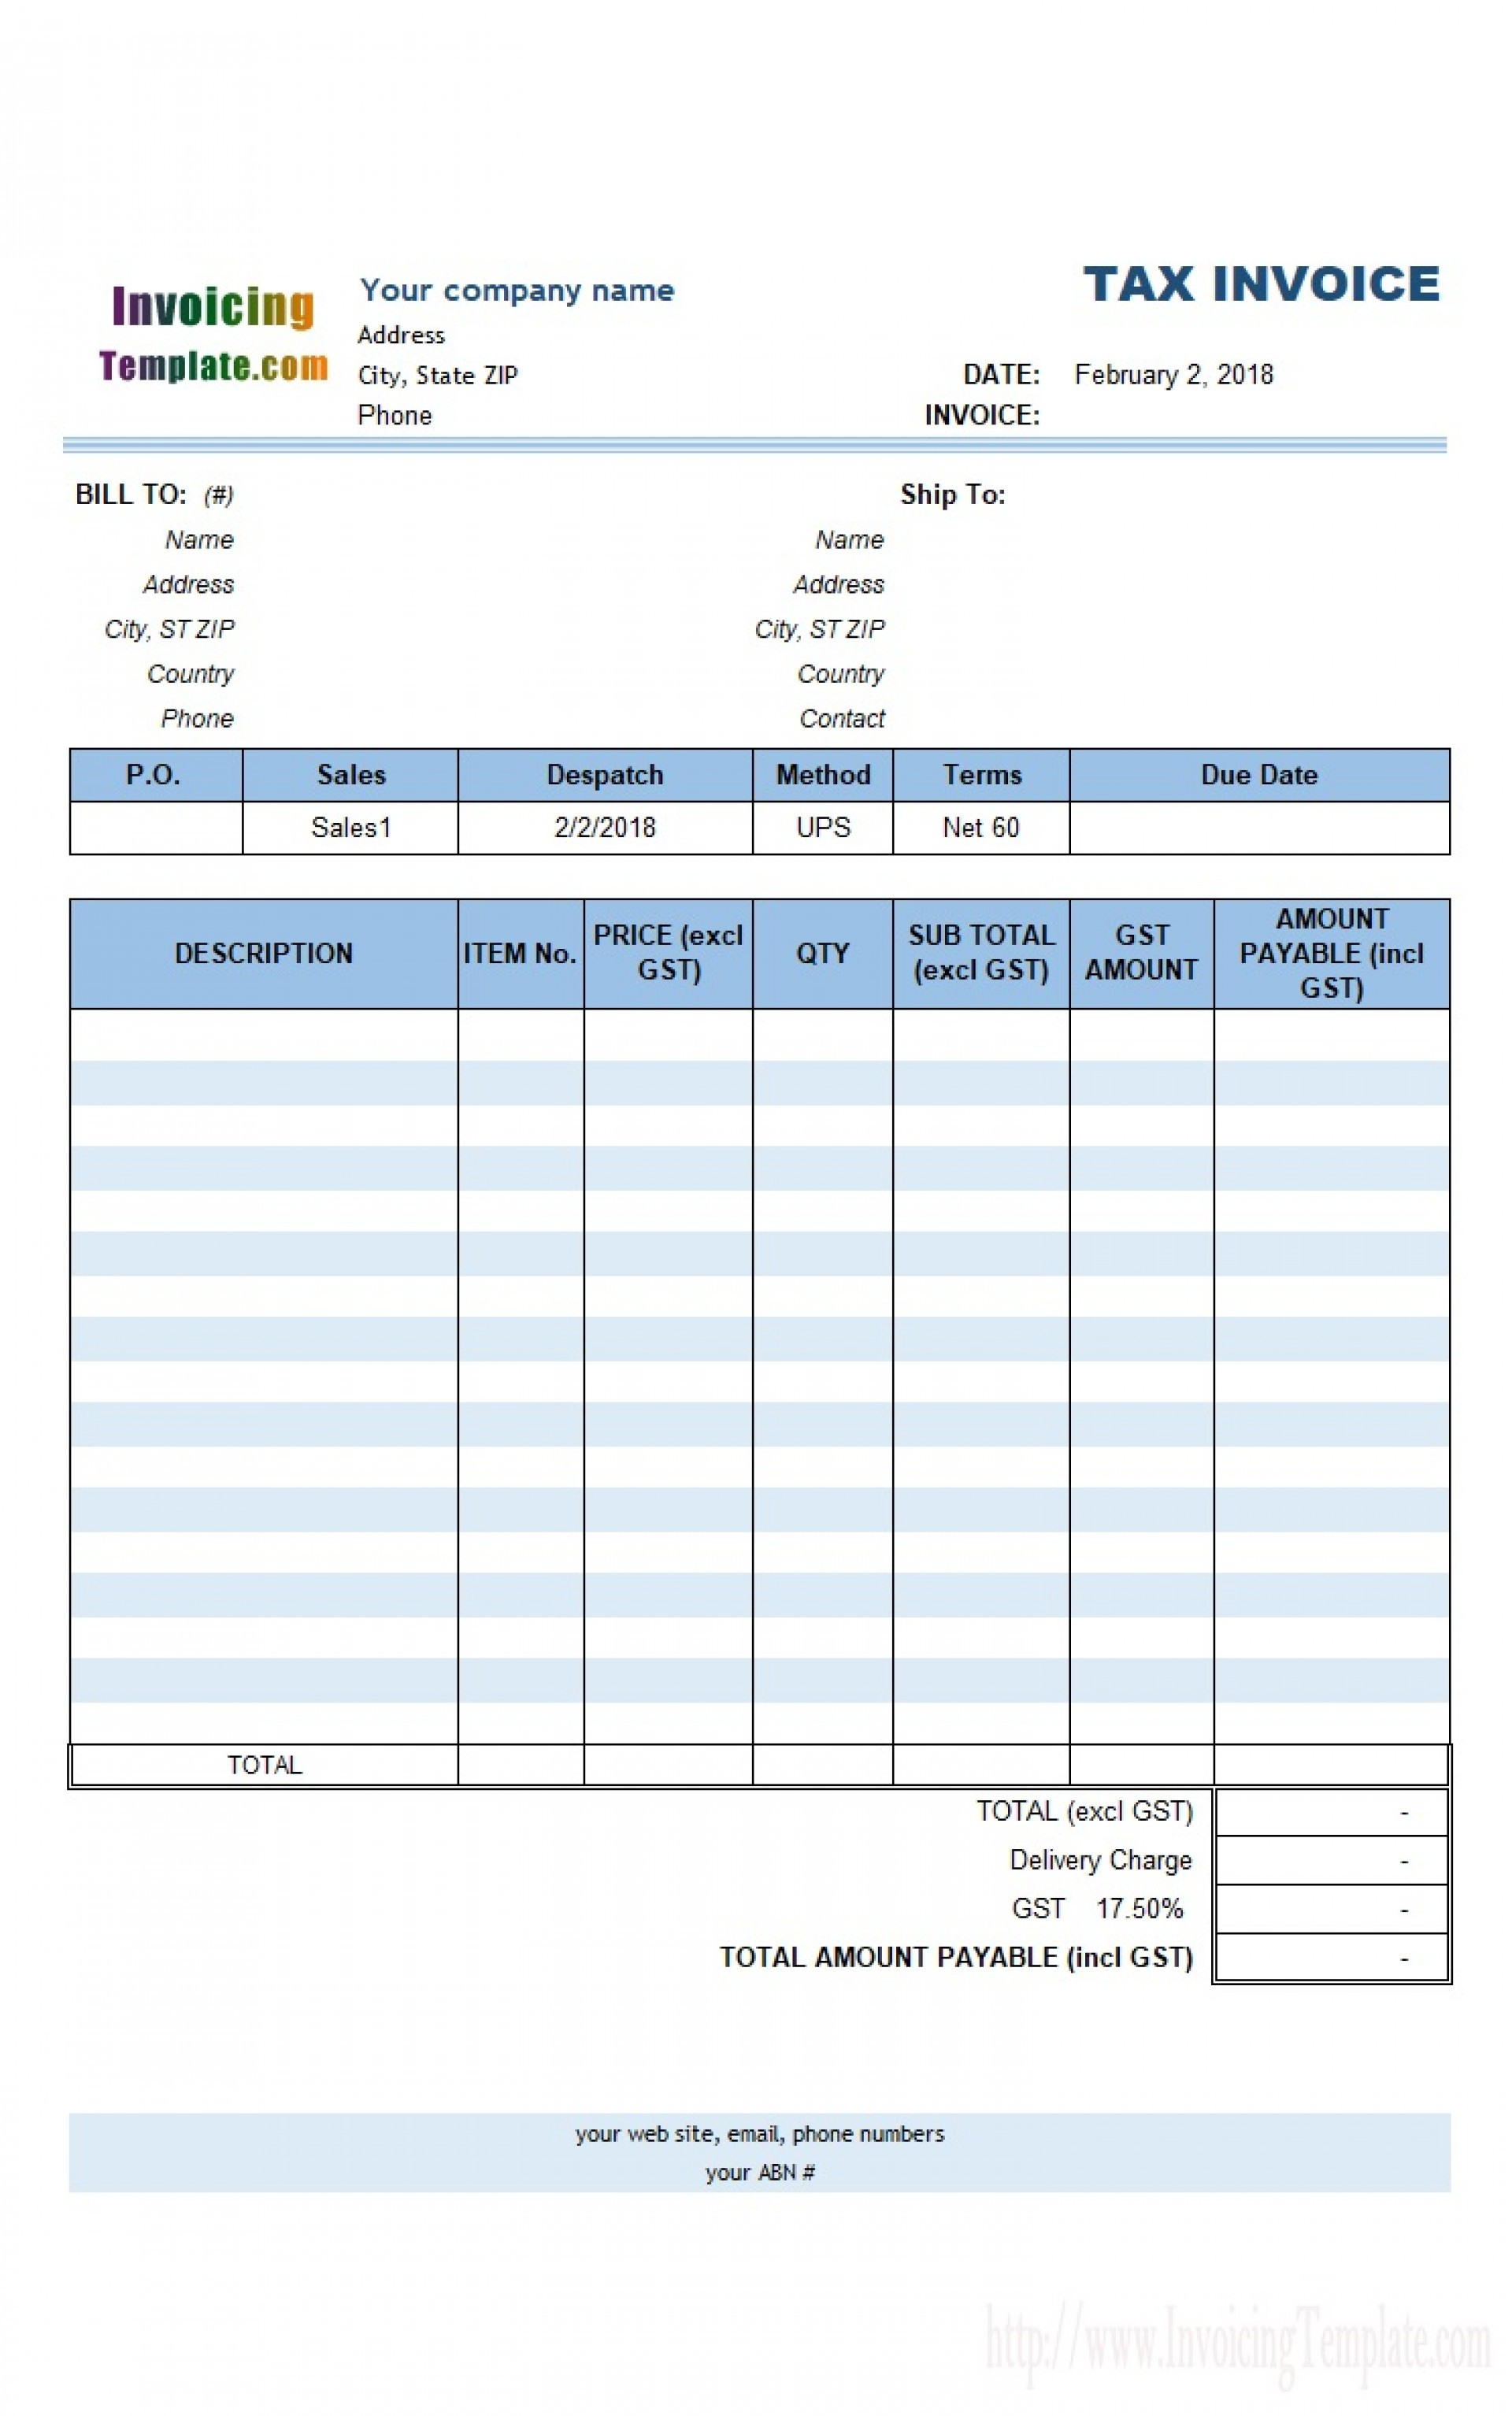 000 Fantastic Free Excell Invoice Template Picture  Excel Gst India Canada Tax Australia1920